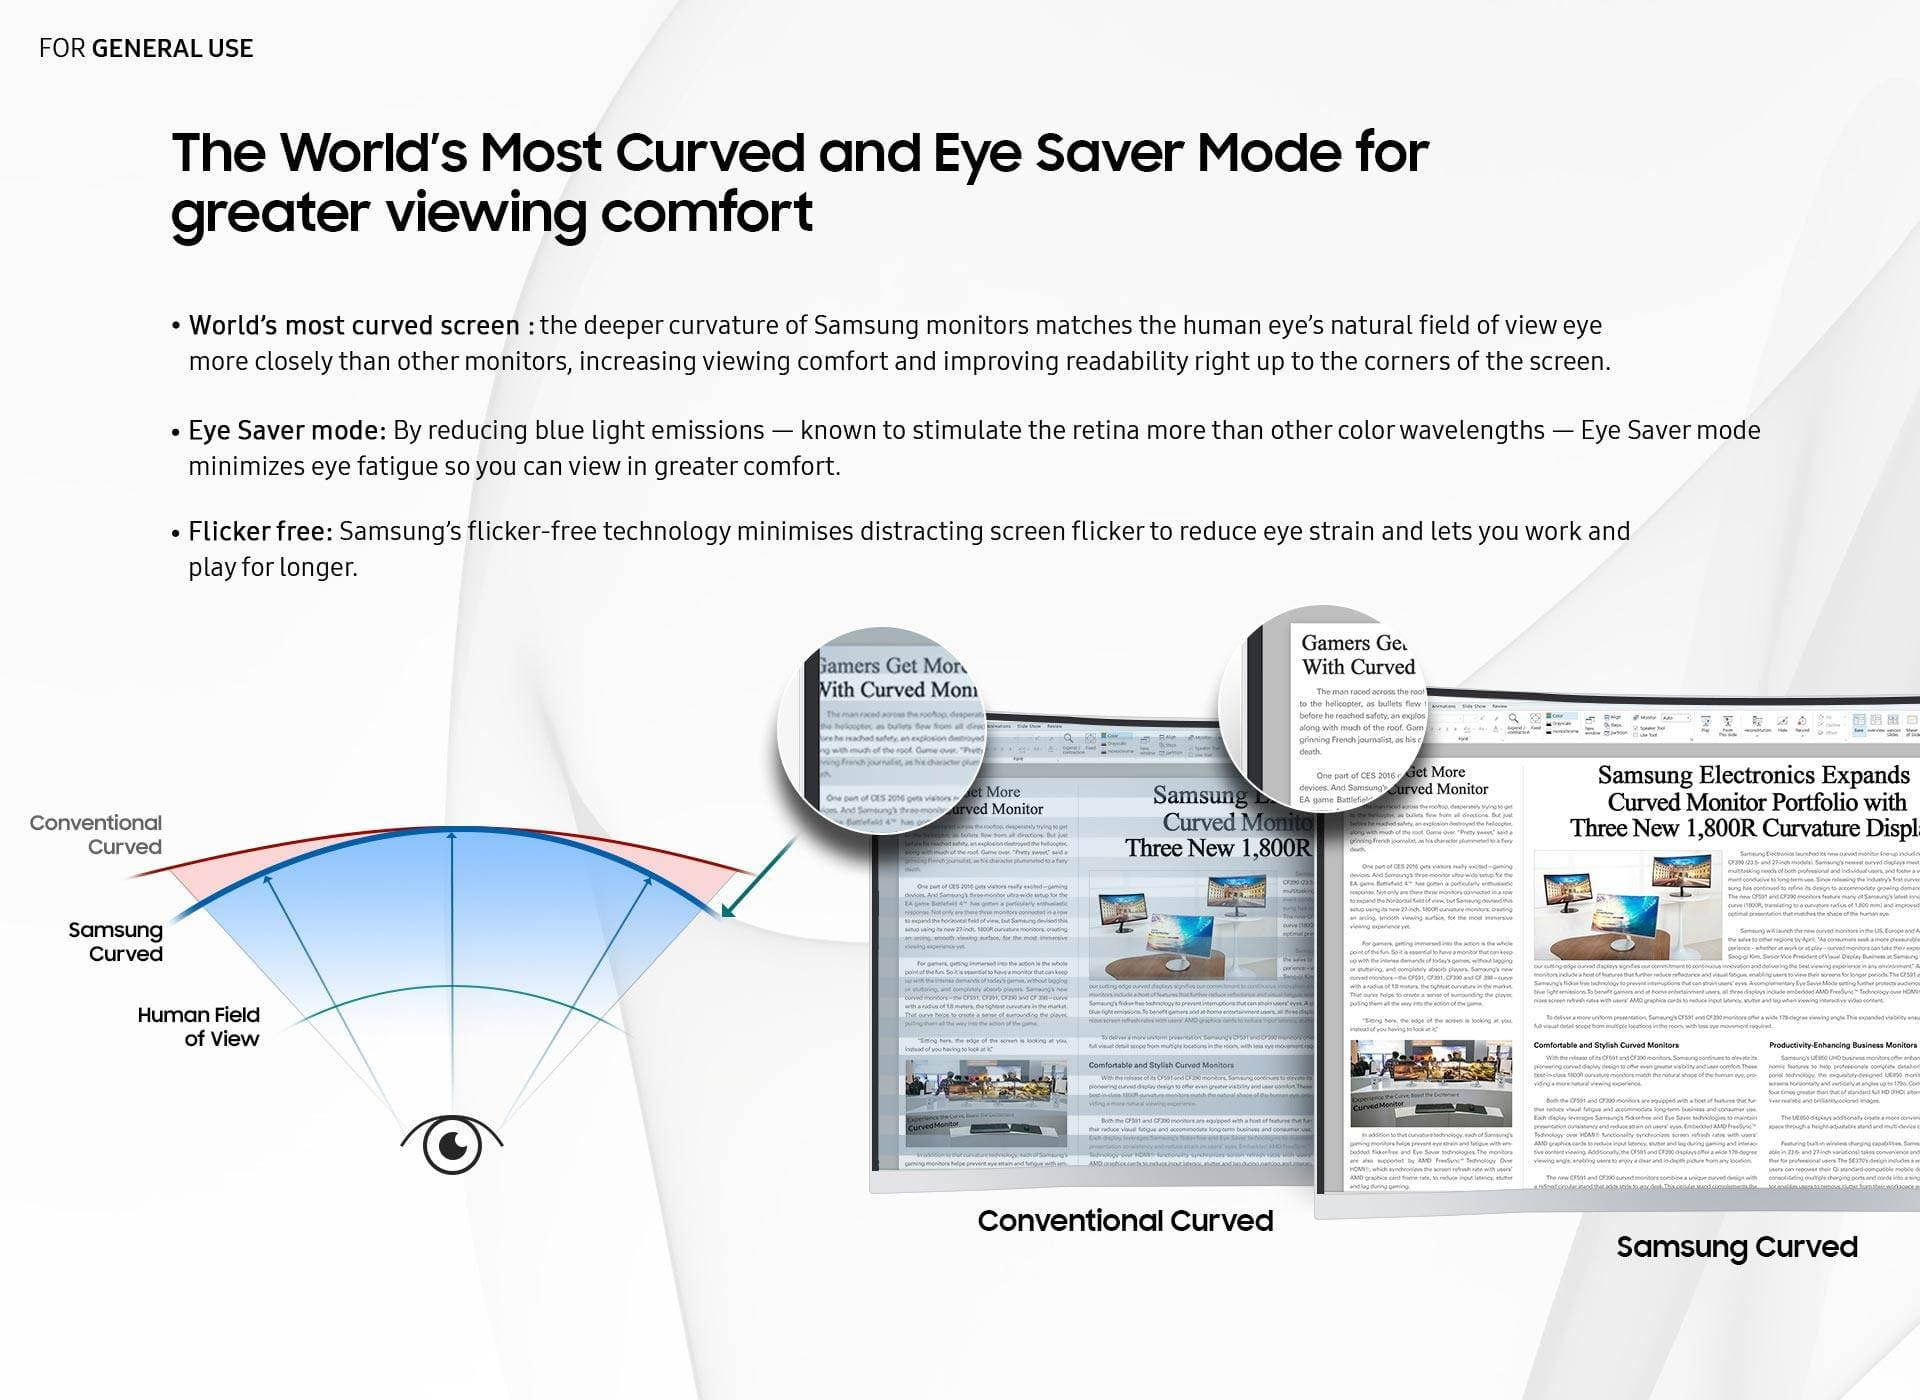 The World's Most Curved and Eye Saver Mode for greater viewing comfort